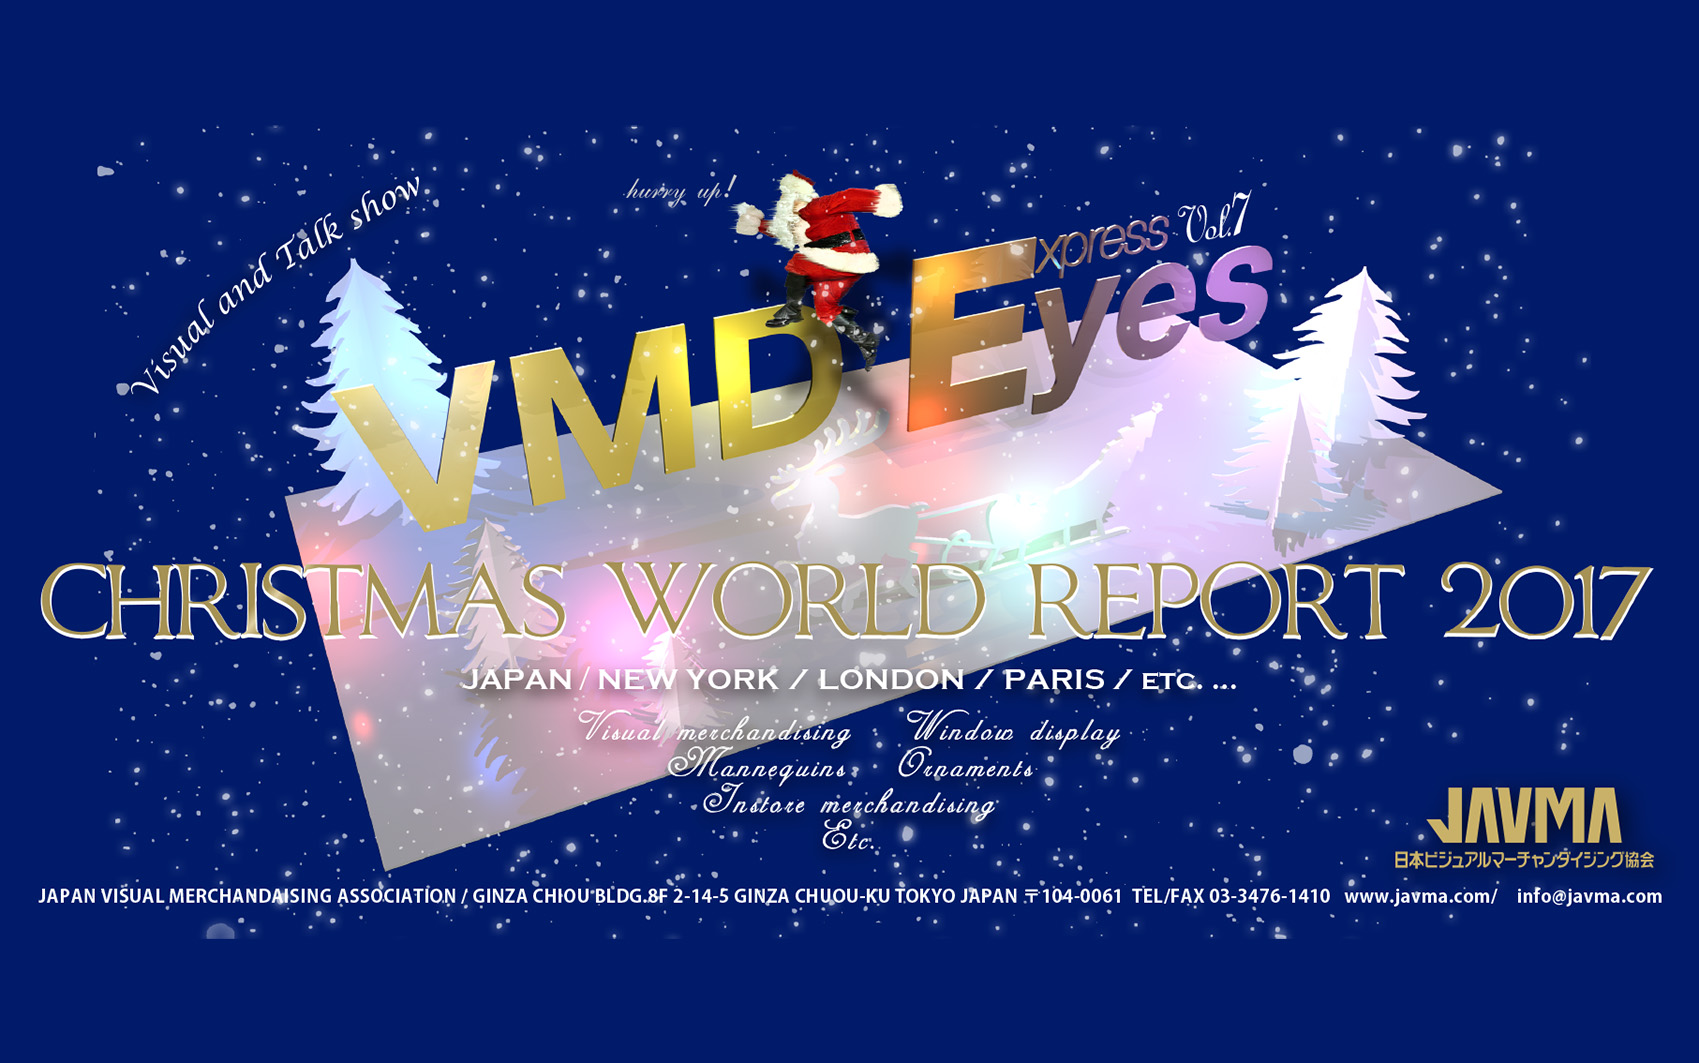 VMD Eyes Express vol.7